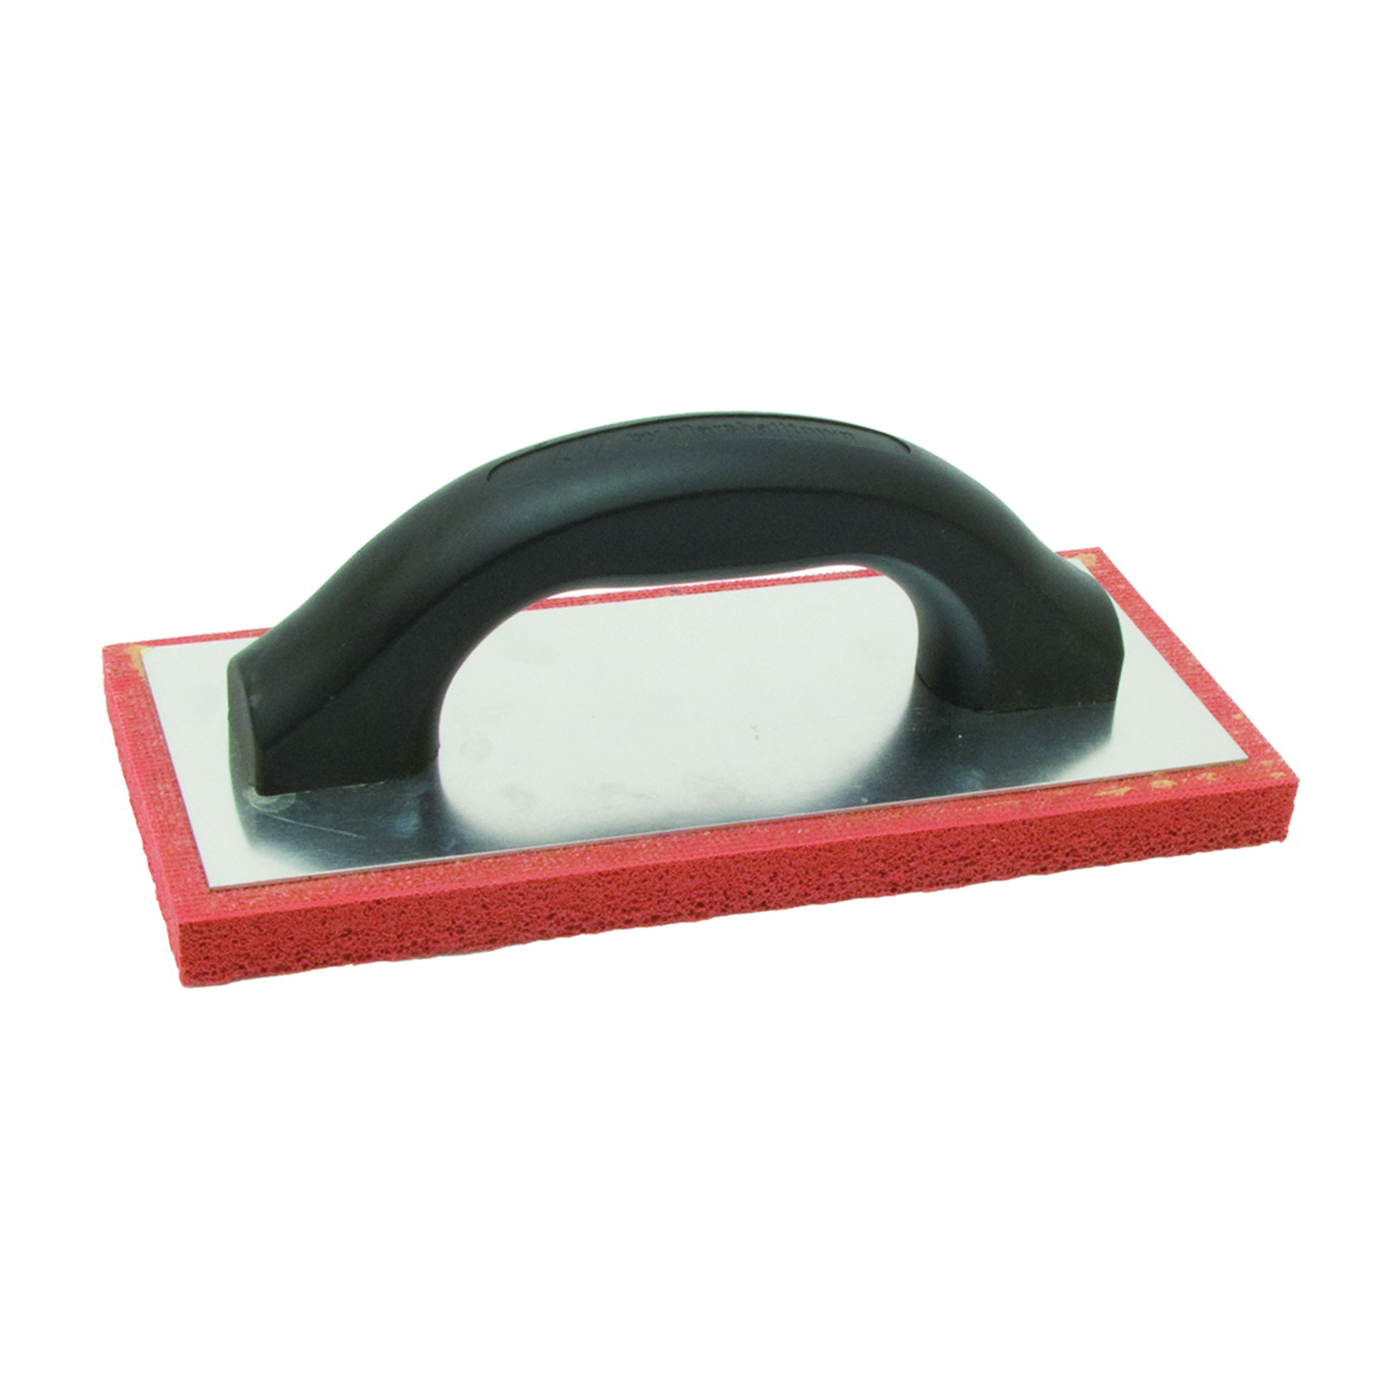 Picture of Marshalltown RRF94F Masonry Float, 9 in L Blade, 4 in W Blade, 5/8 in Thick Blade, Fine Rubber Blade